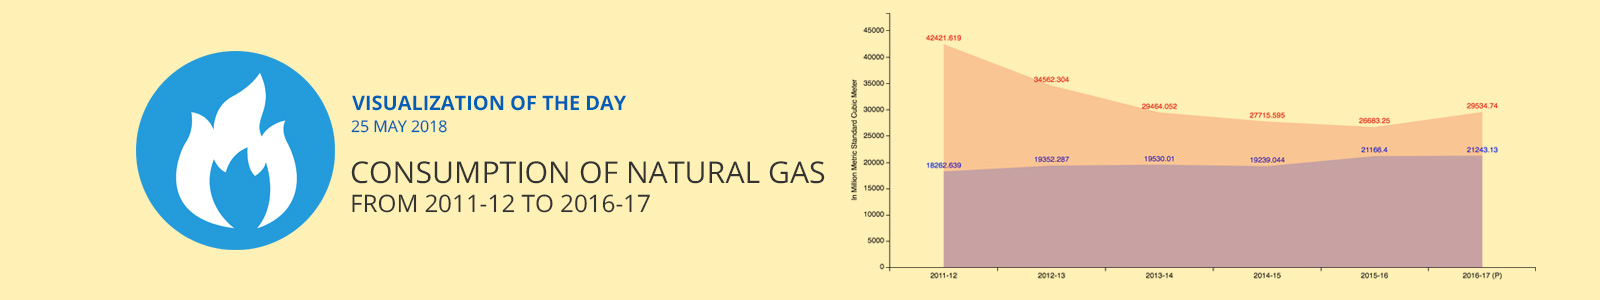 Visualization of the Day - 25th May 2018 : Consumption of Natural Gas from 2011-12 to 2016-17